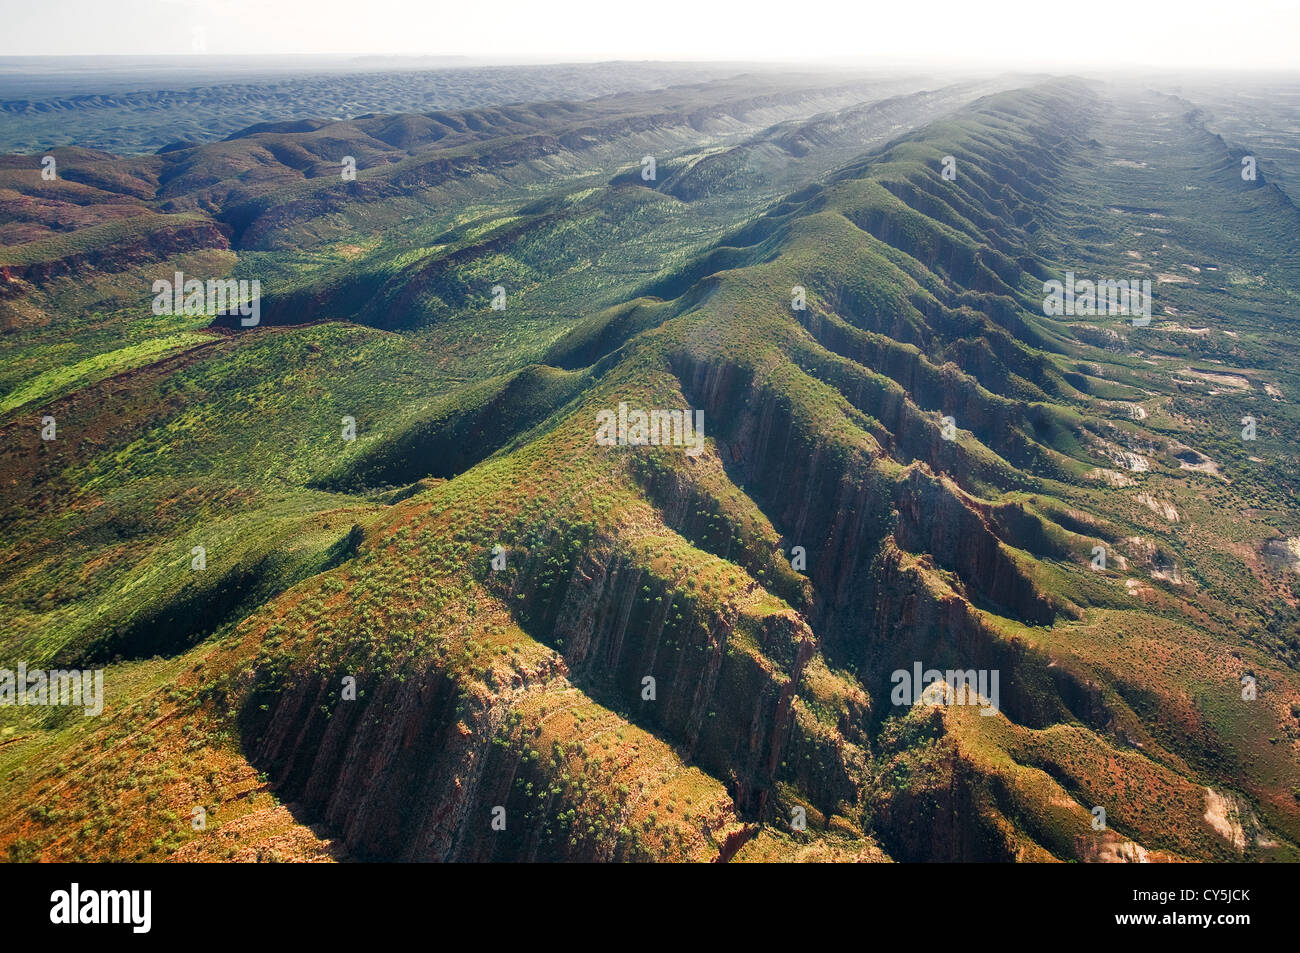 Aerial of the West MacDonnell Ranges. - Stock Image